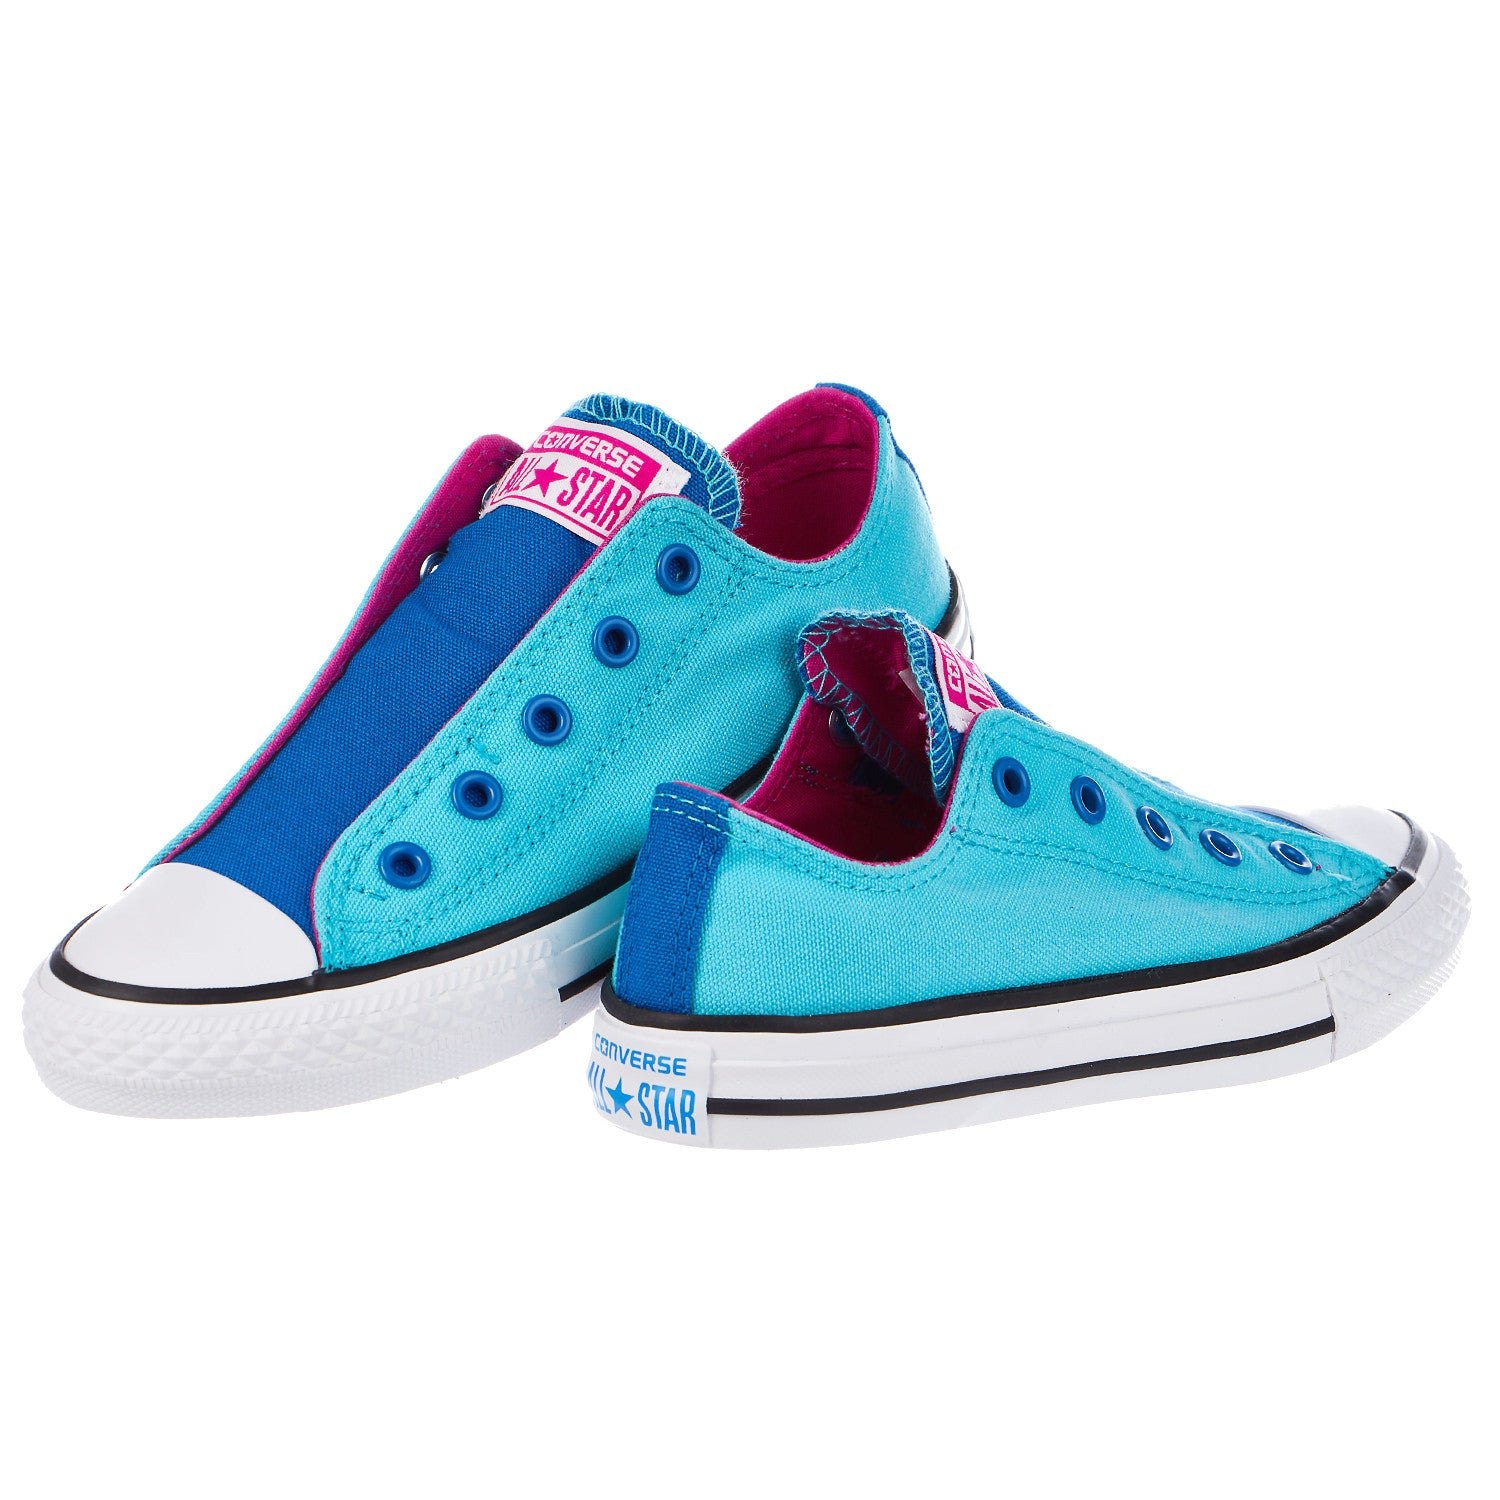 25e687e70998 ... new style converse chuck taylor all star slip low top big kids d8260  15622